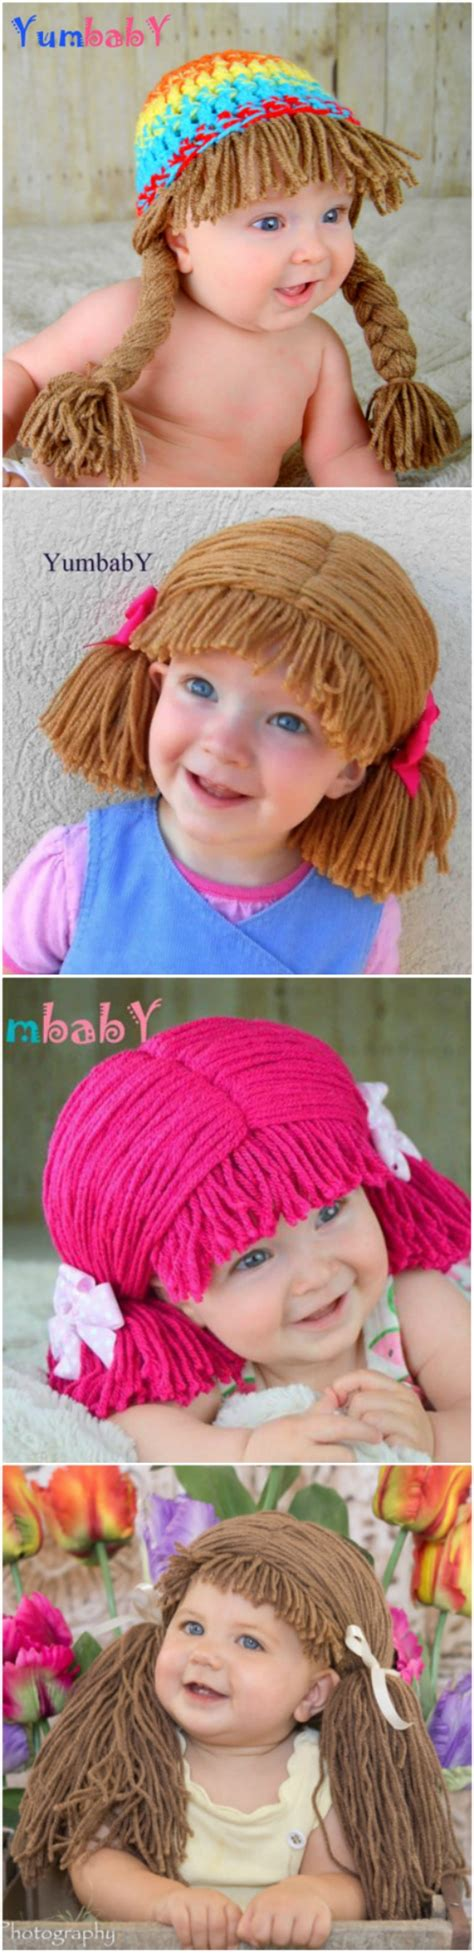 Baby Cabbage Crochet Patch Hat Pattern